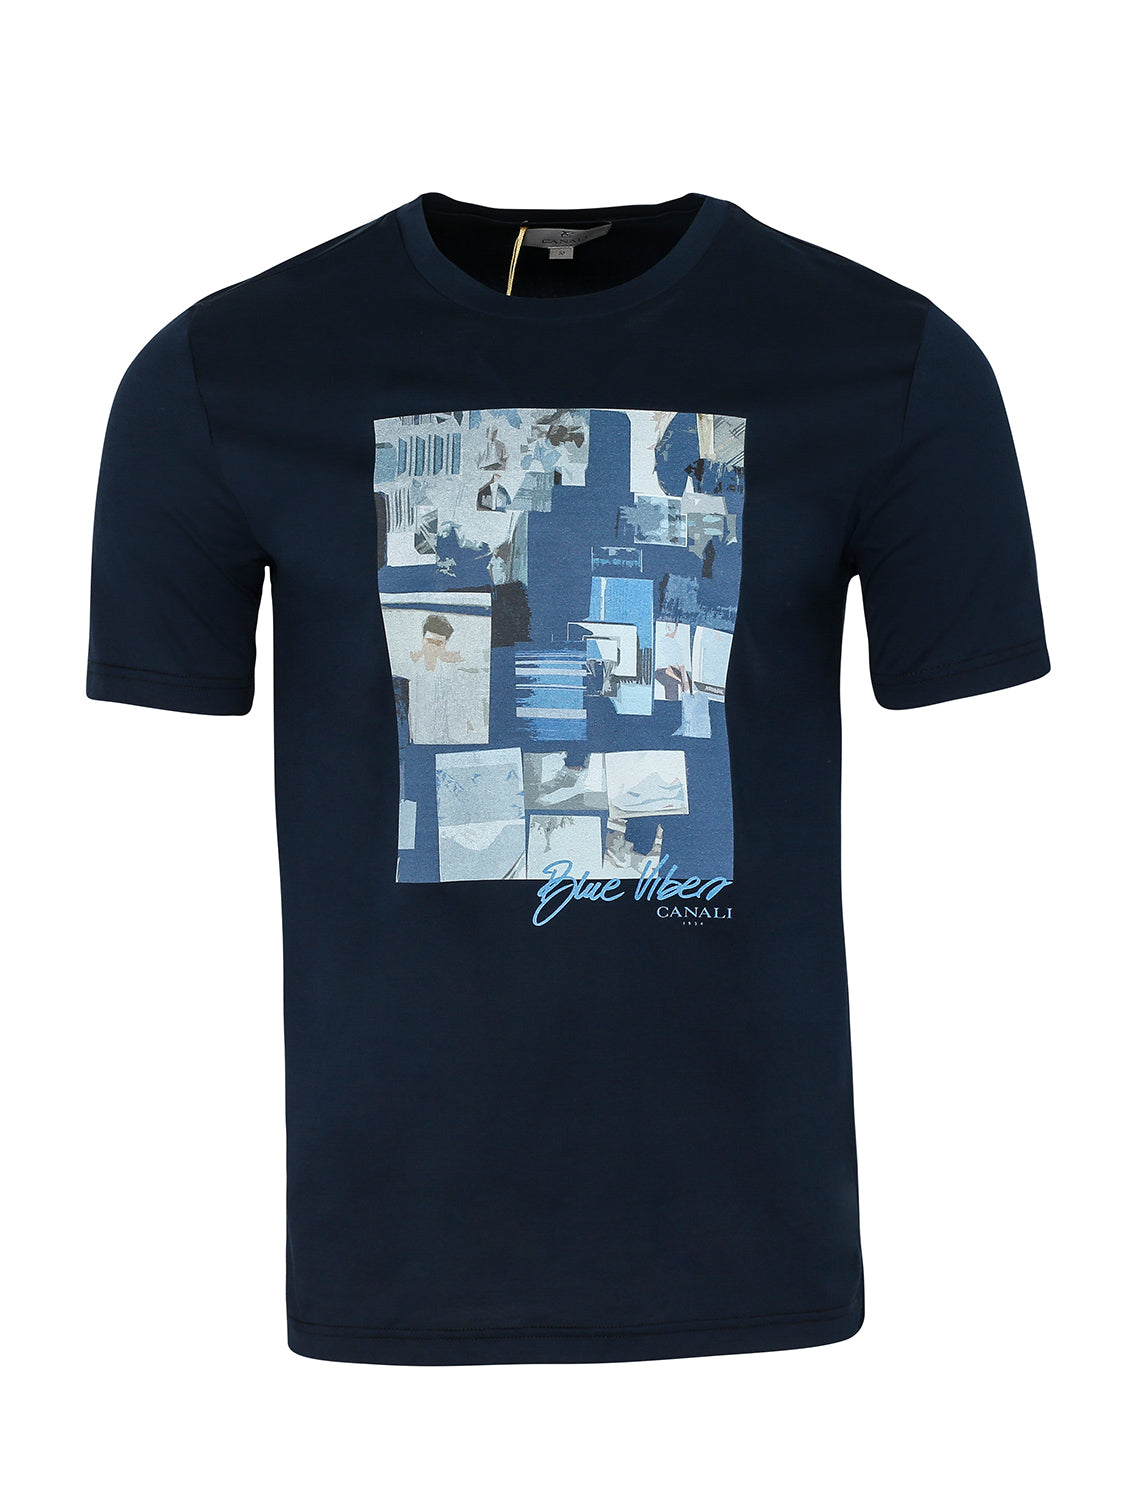 Canali Crew Printed T-Shirt (Navy) - Union 22